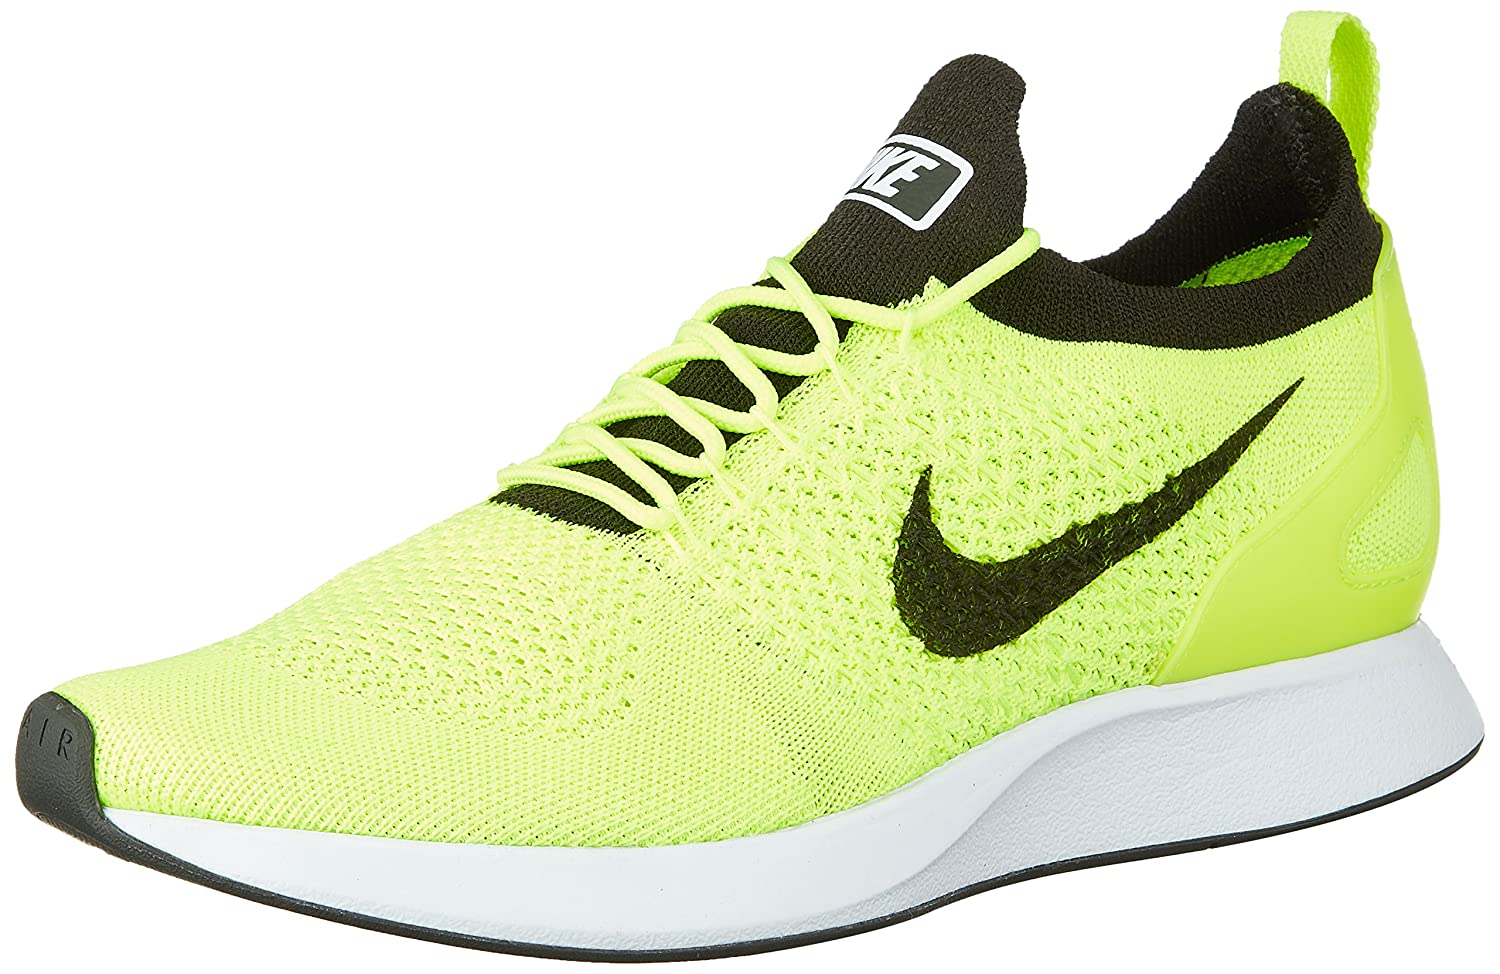 brand new 46a36 6dce7 ... ireland nike mens air zoom mariah flyknit racer running shoe b003jyfni8  11 dm us 7c5a0 d2b4d